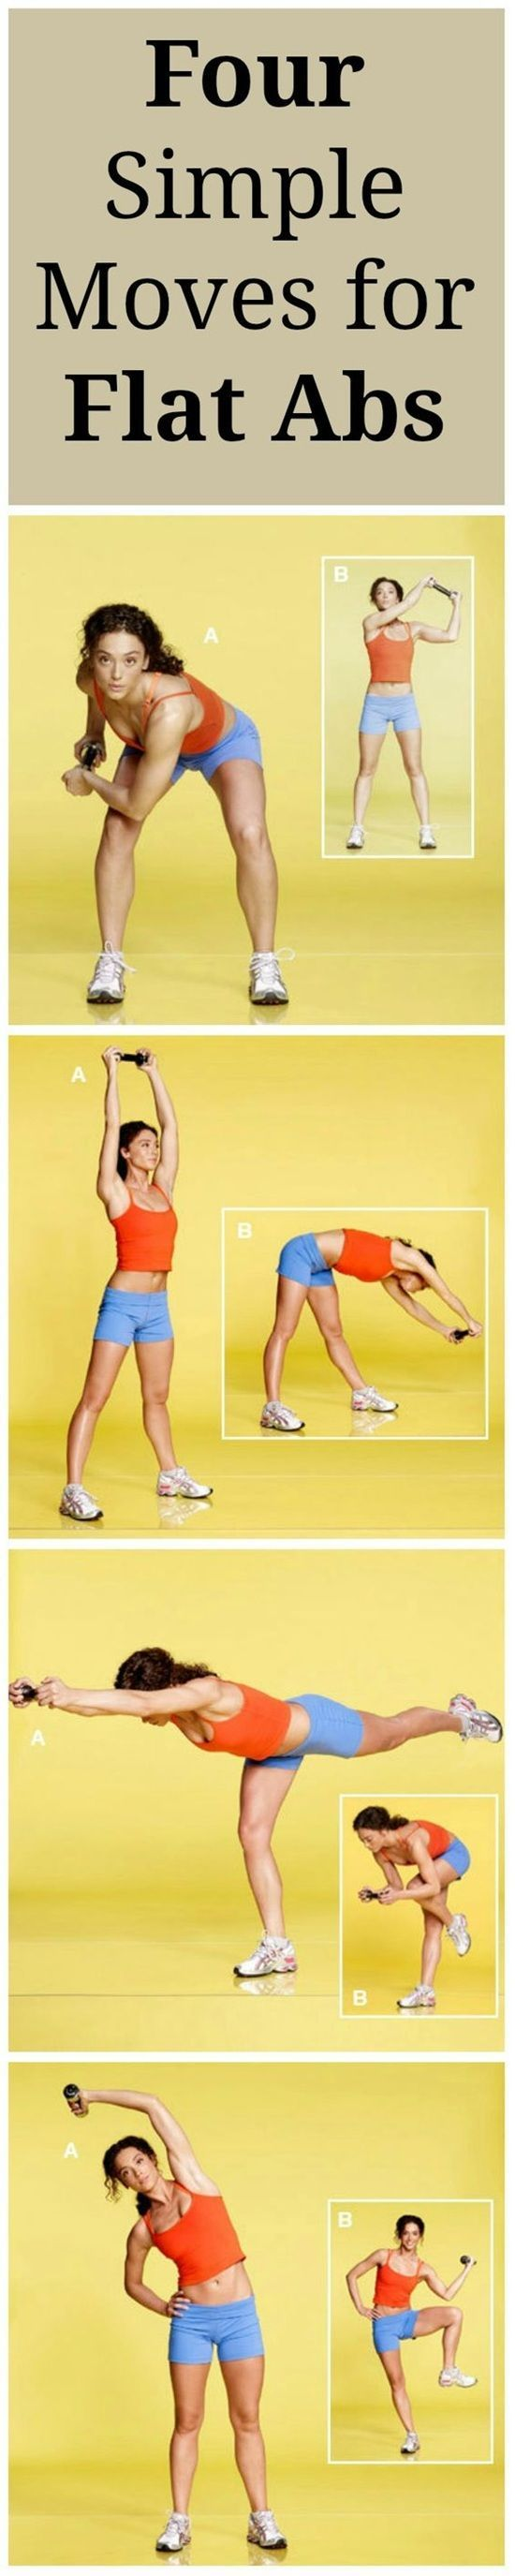 Best Yoga Poses & Sequences for abs, a flat belly & a